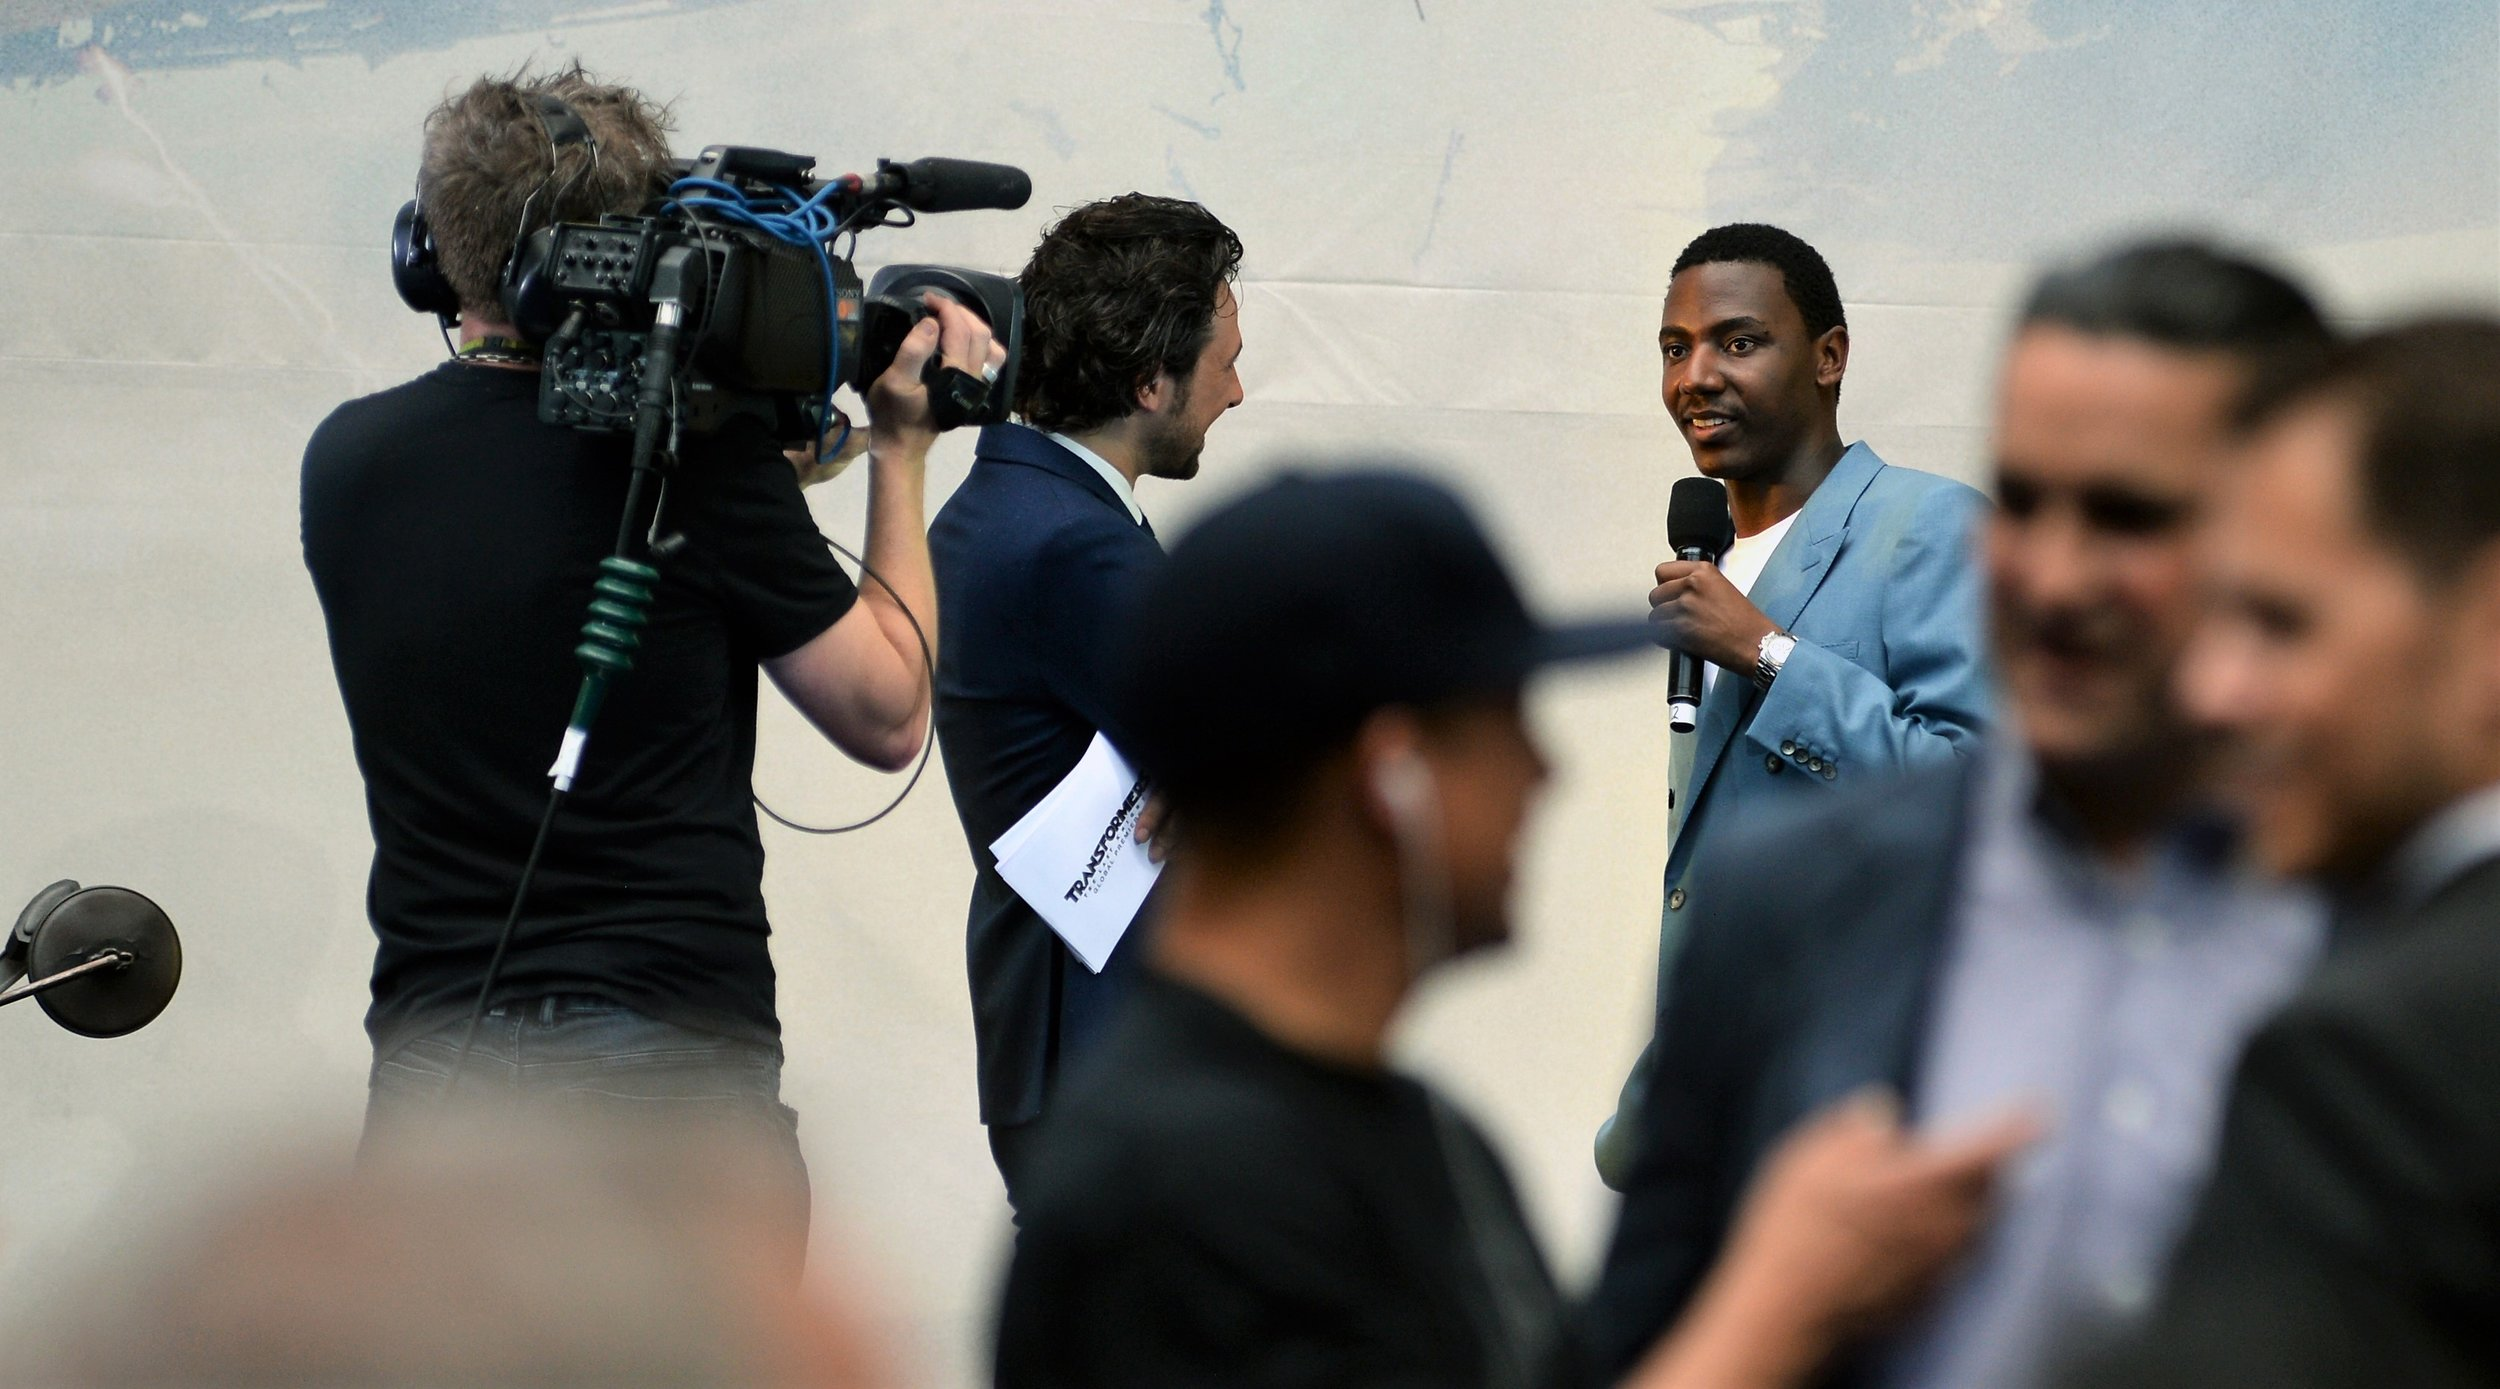 """Jerrod Carmichael was in both of the Zac Efron-led """"Neighbours"""" films, as well as a TV show called """"The Carmichael Show""""... but I'm not sure what character he plays in that."""